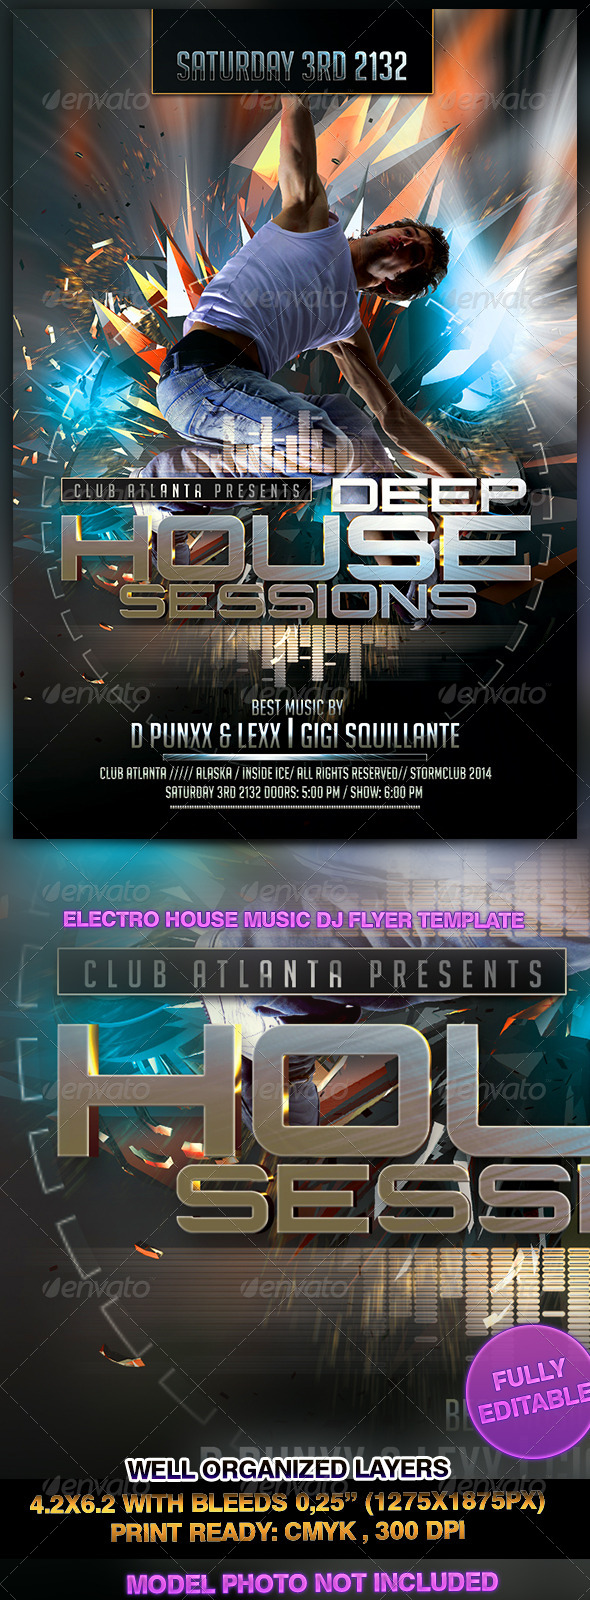 Electro House Music DJ Flyer Template - Events Flyers